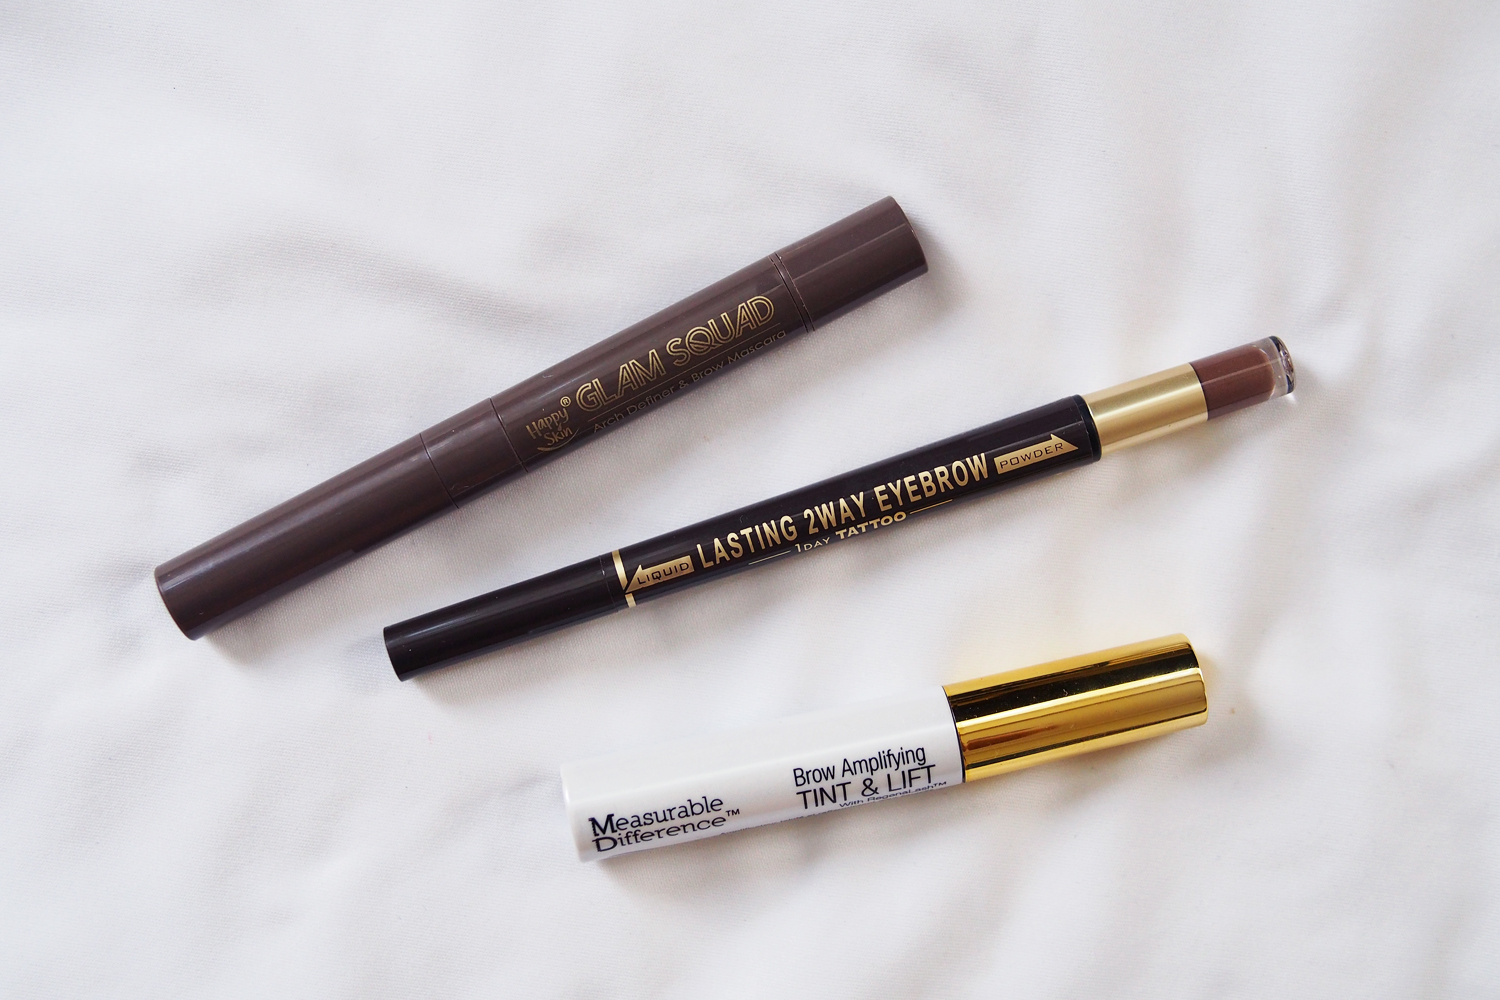 Happy Skin Glam Squad Arch Definer & Brow Mascara (P949),  K-Palette Lasting 2Way Eyebrow Pencil  (P795),  Measurable Difference Brow Amplifying Tint & Lift  (~P520)